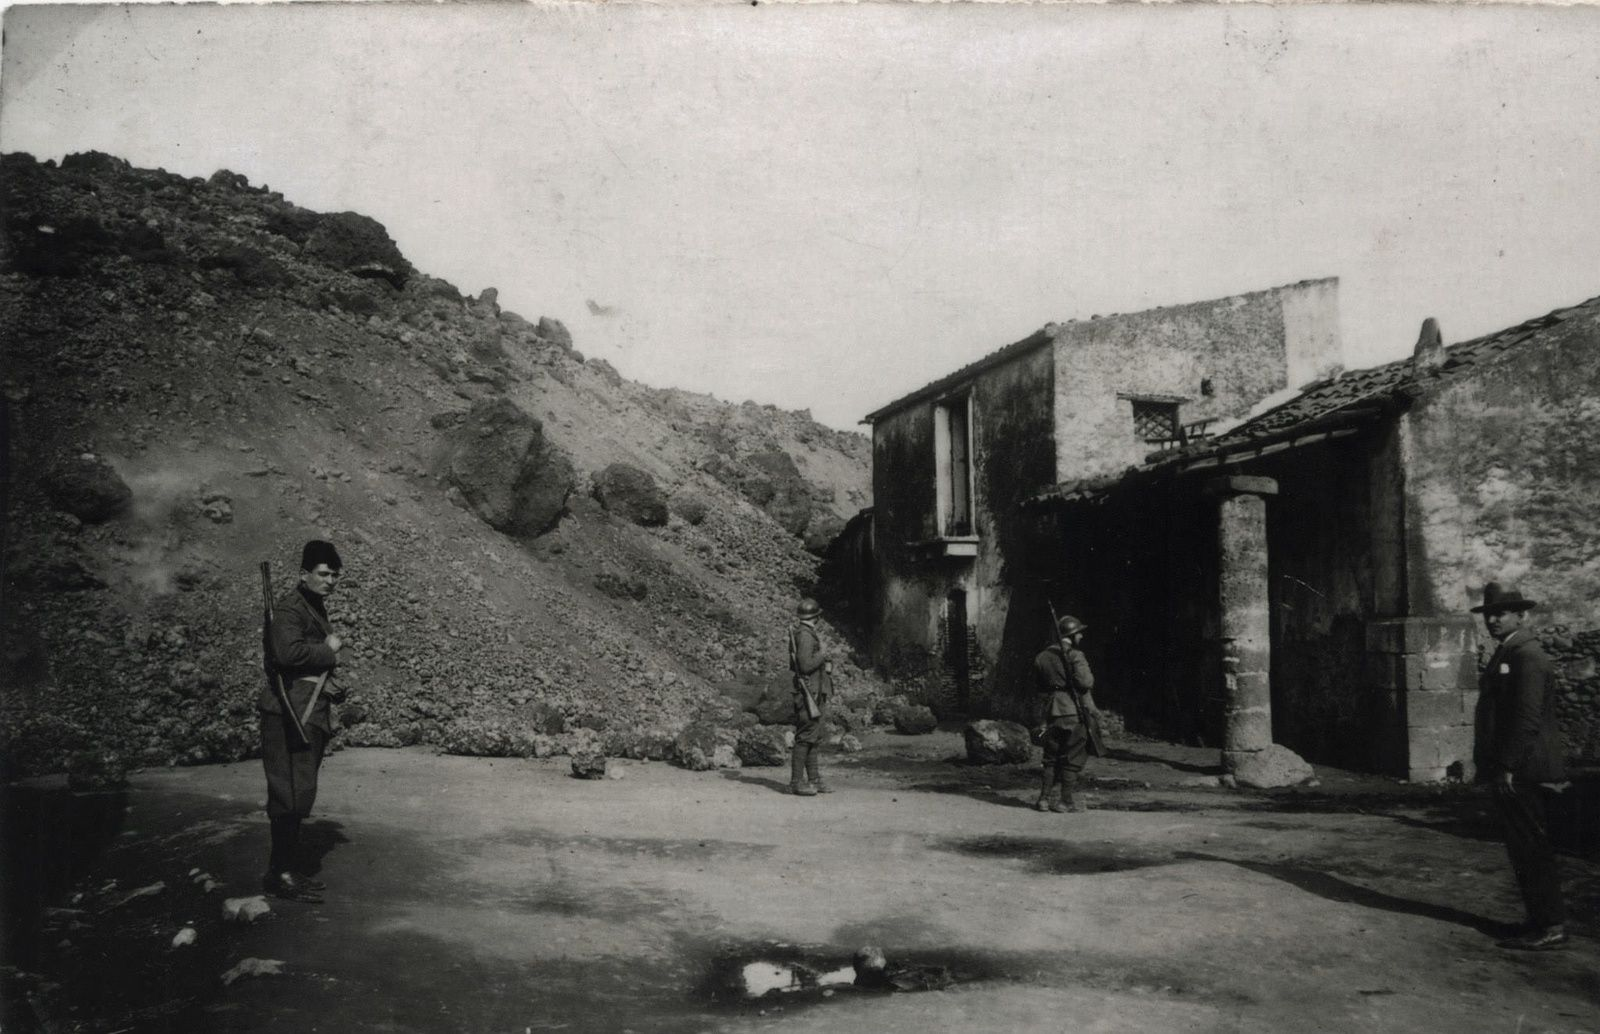 Mascali - 1928 - the military presence on site - ETNA archives - ERUZIONE DEL 1928 CHE RASE AL SUOLO MASCALI